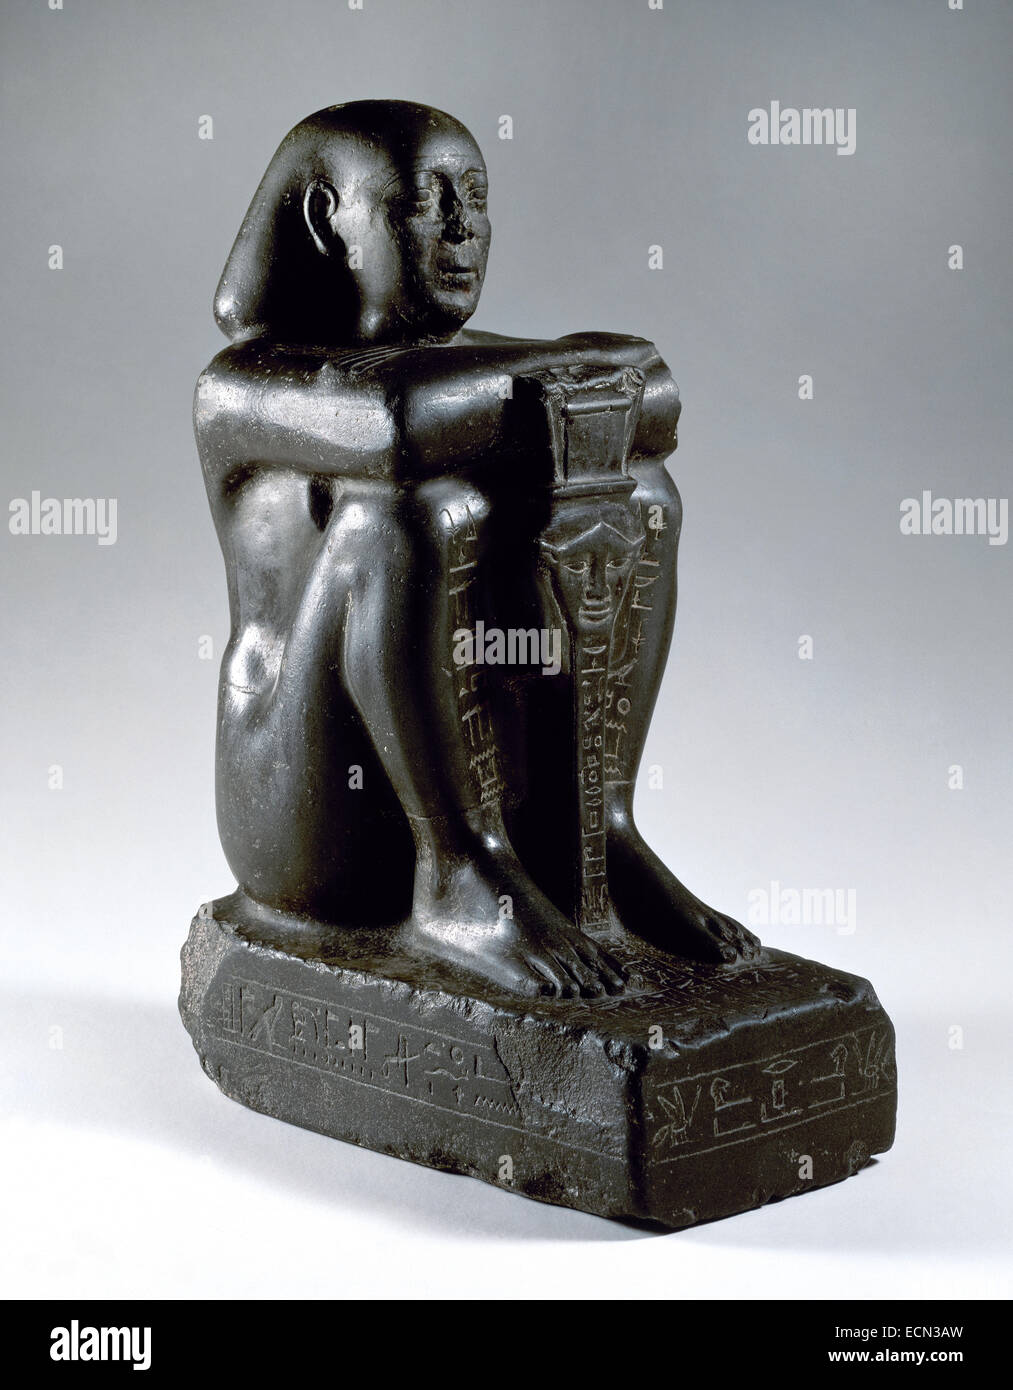 Block statue of Harsomtusemhat (664-610 B.C.) sitting on a socle, with his legs grouped and the hands on his knees.Stock Photo